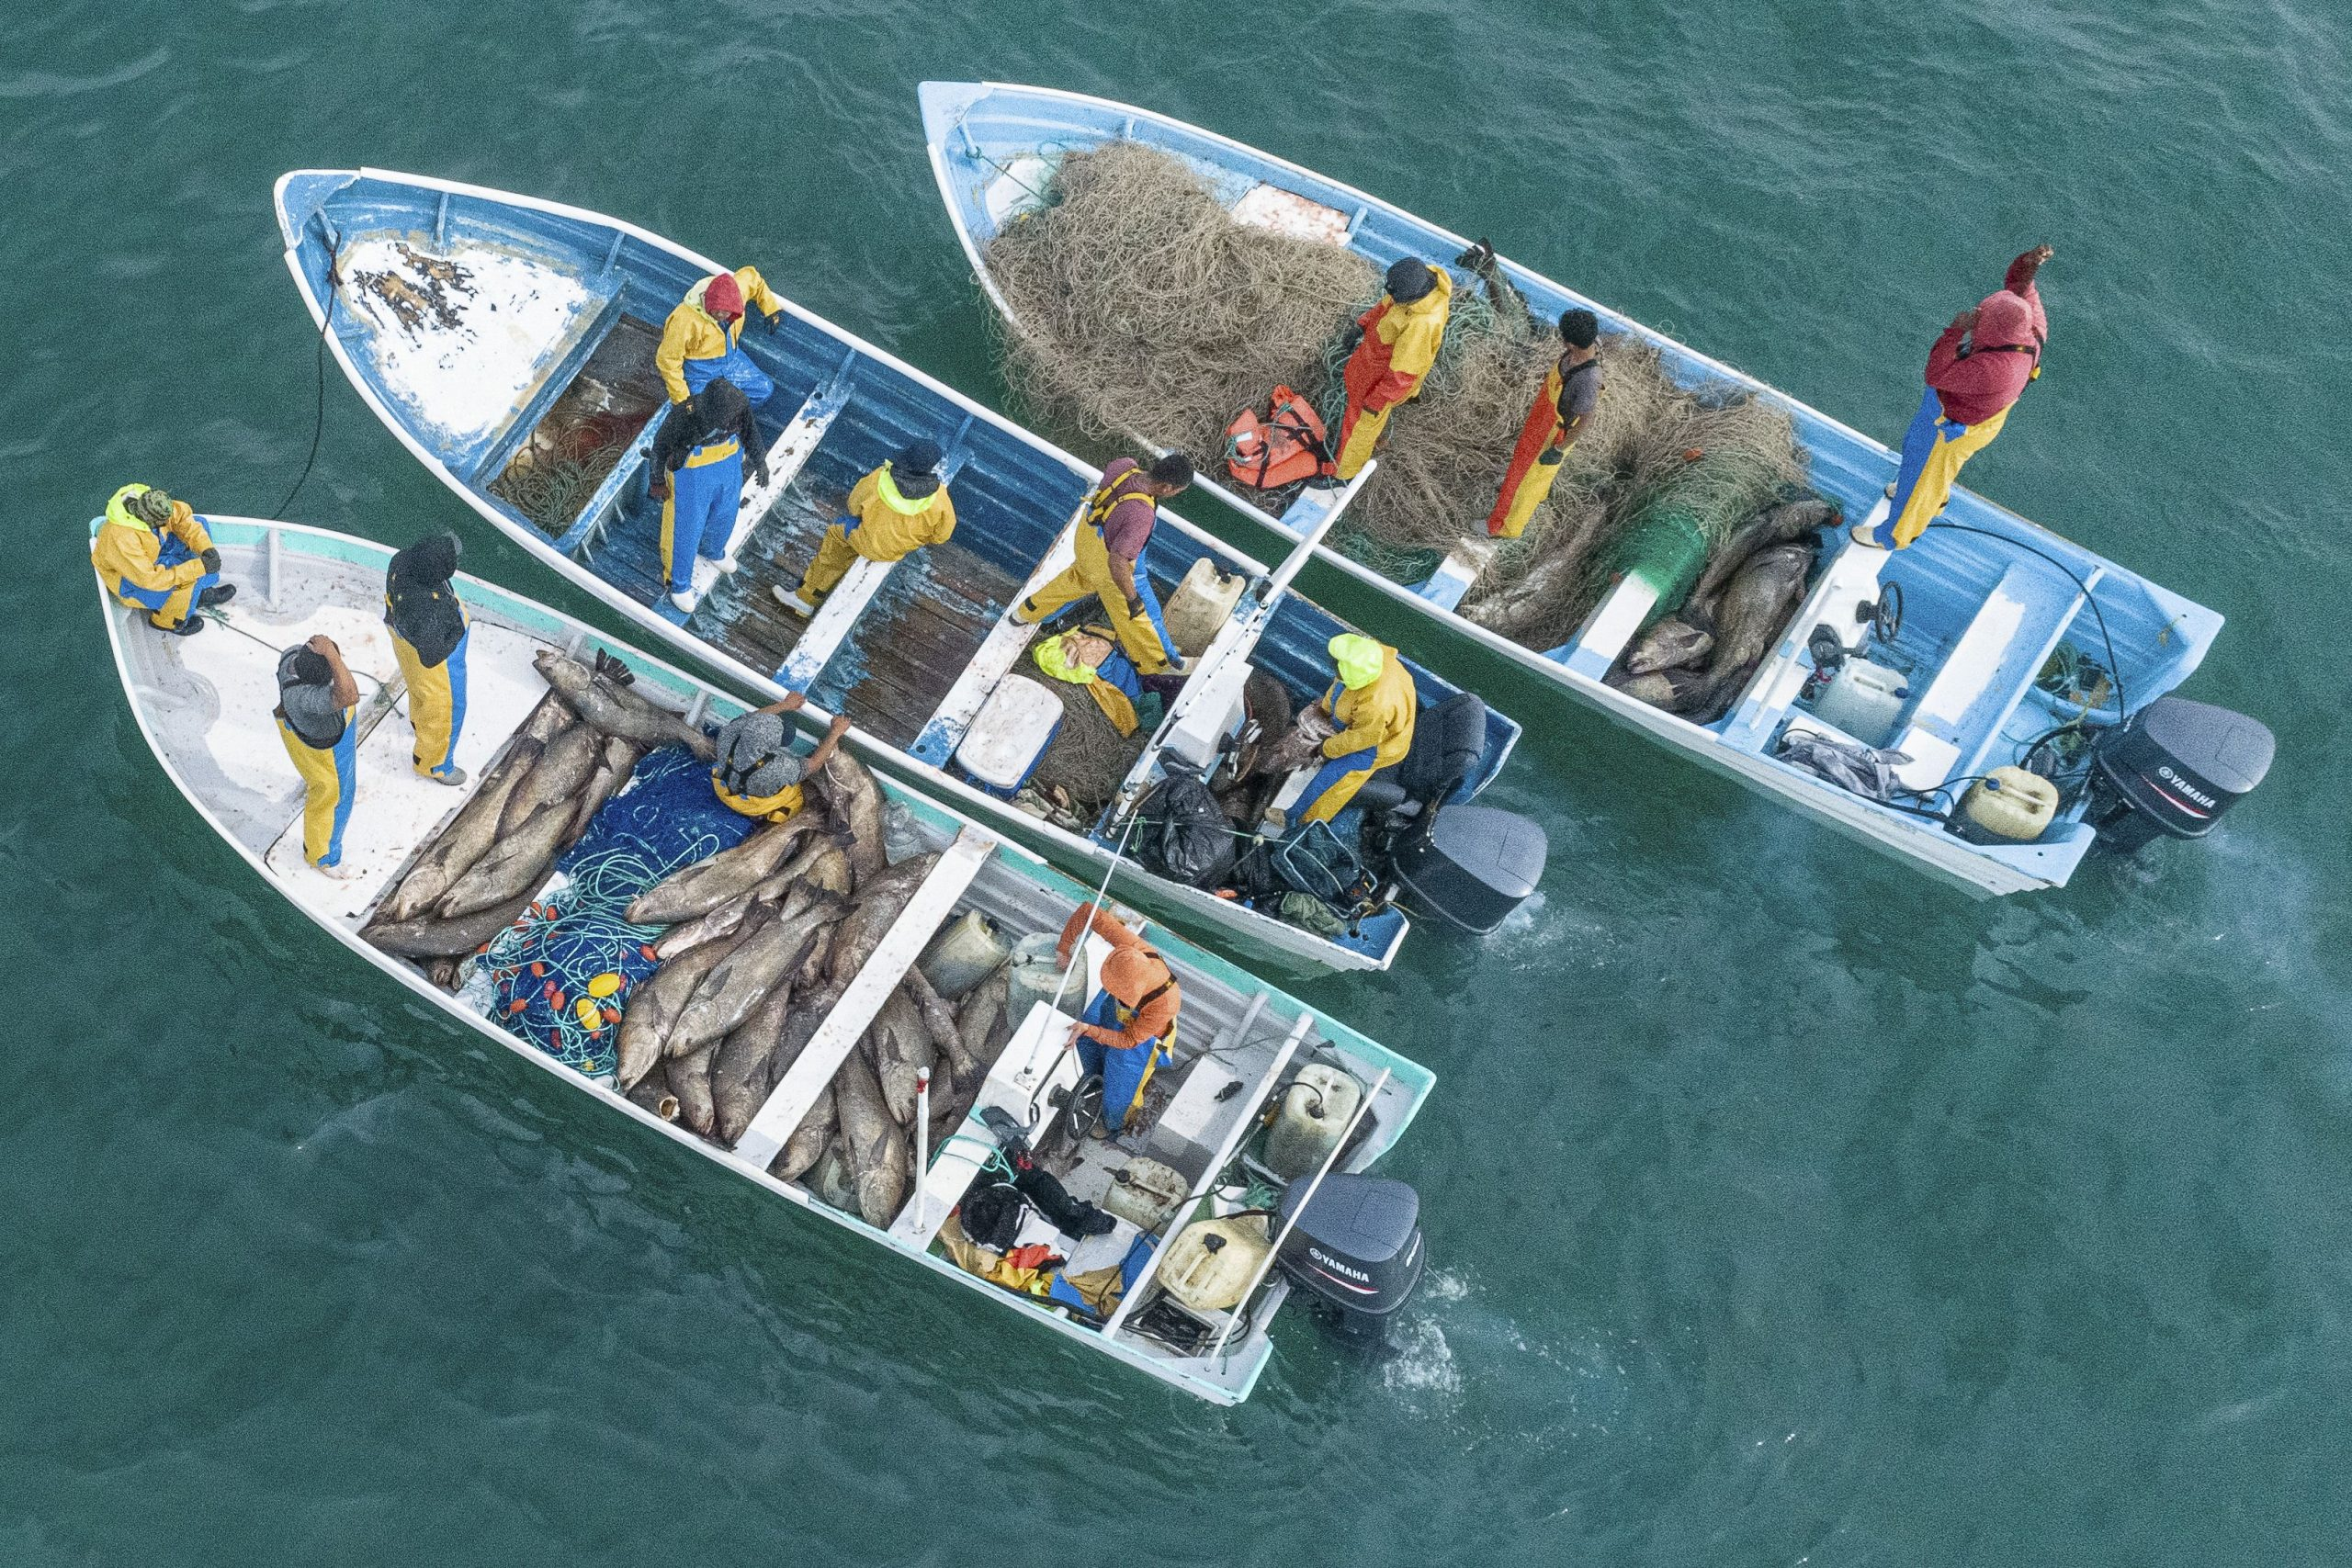 Fishermen Mass to Overwhelm Mexico's Protected Vaquita Porpoises